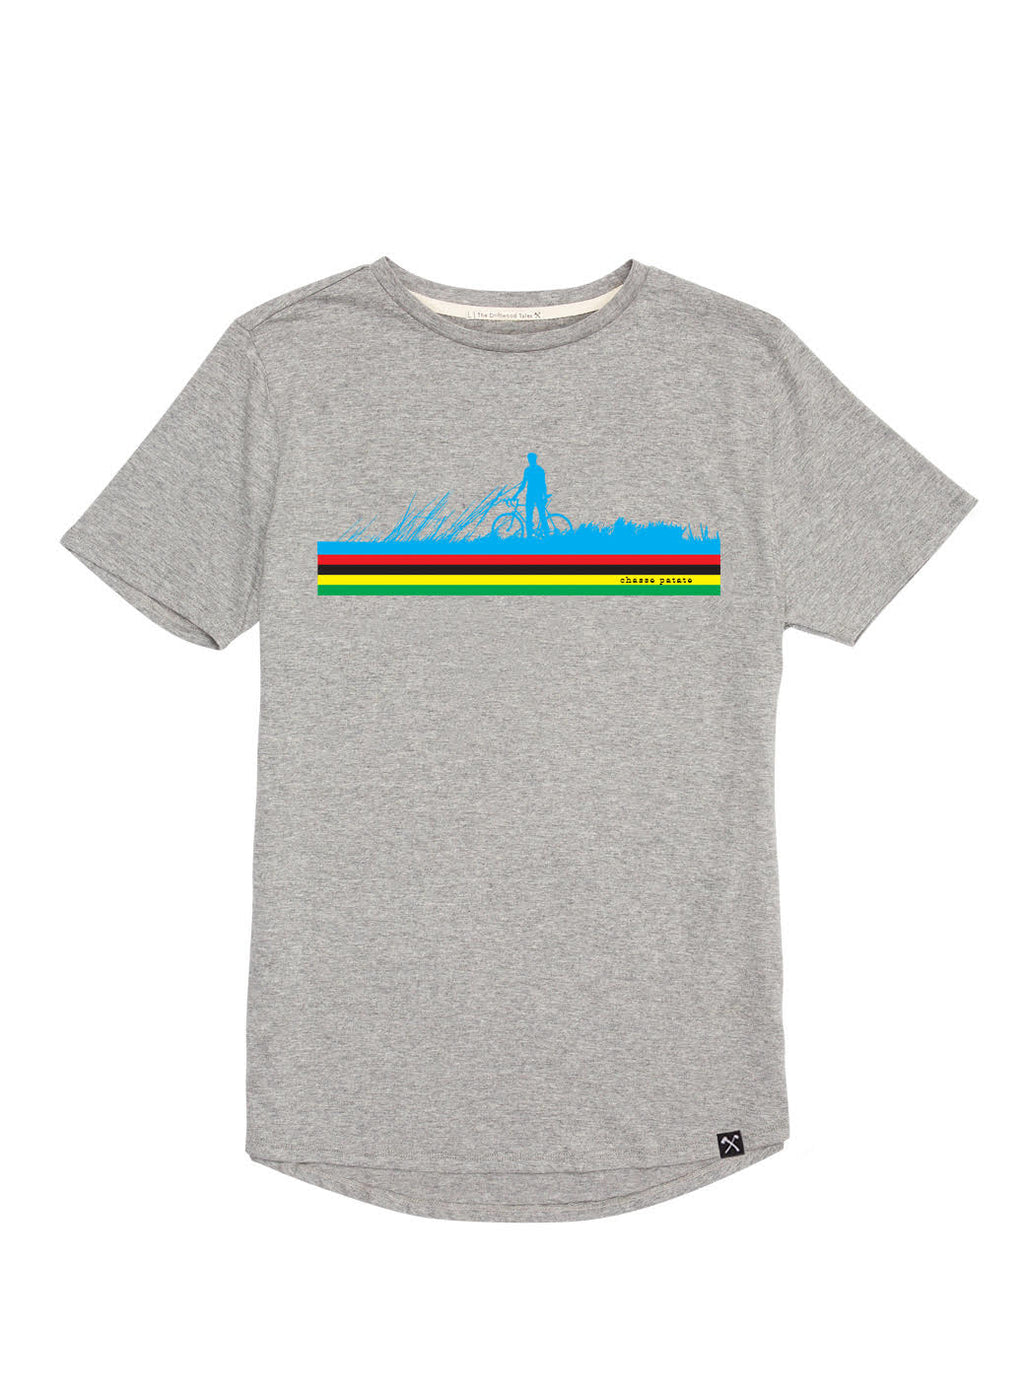 GREY WORLD CHAMPION CYCLING T-SHIRT